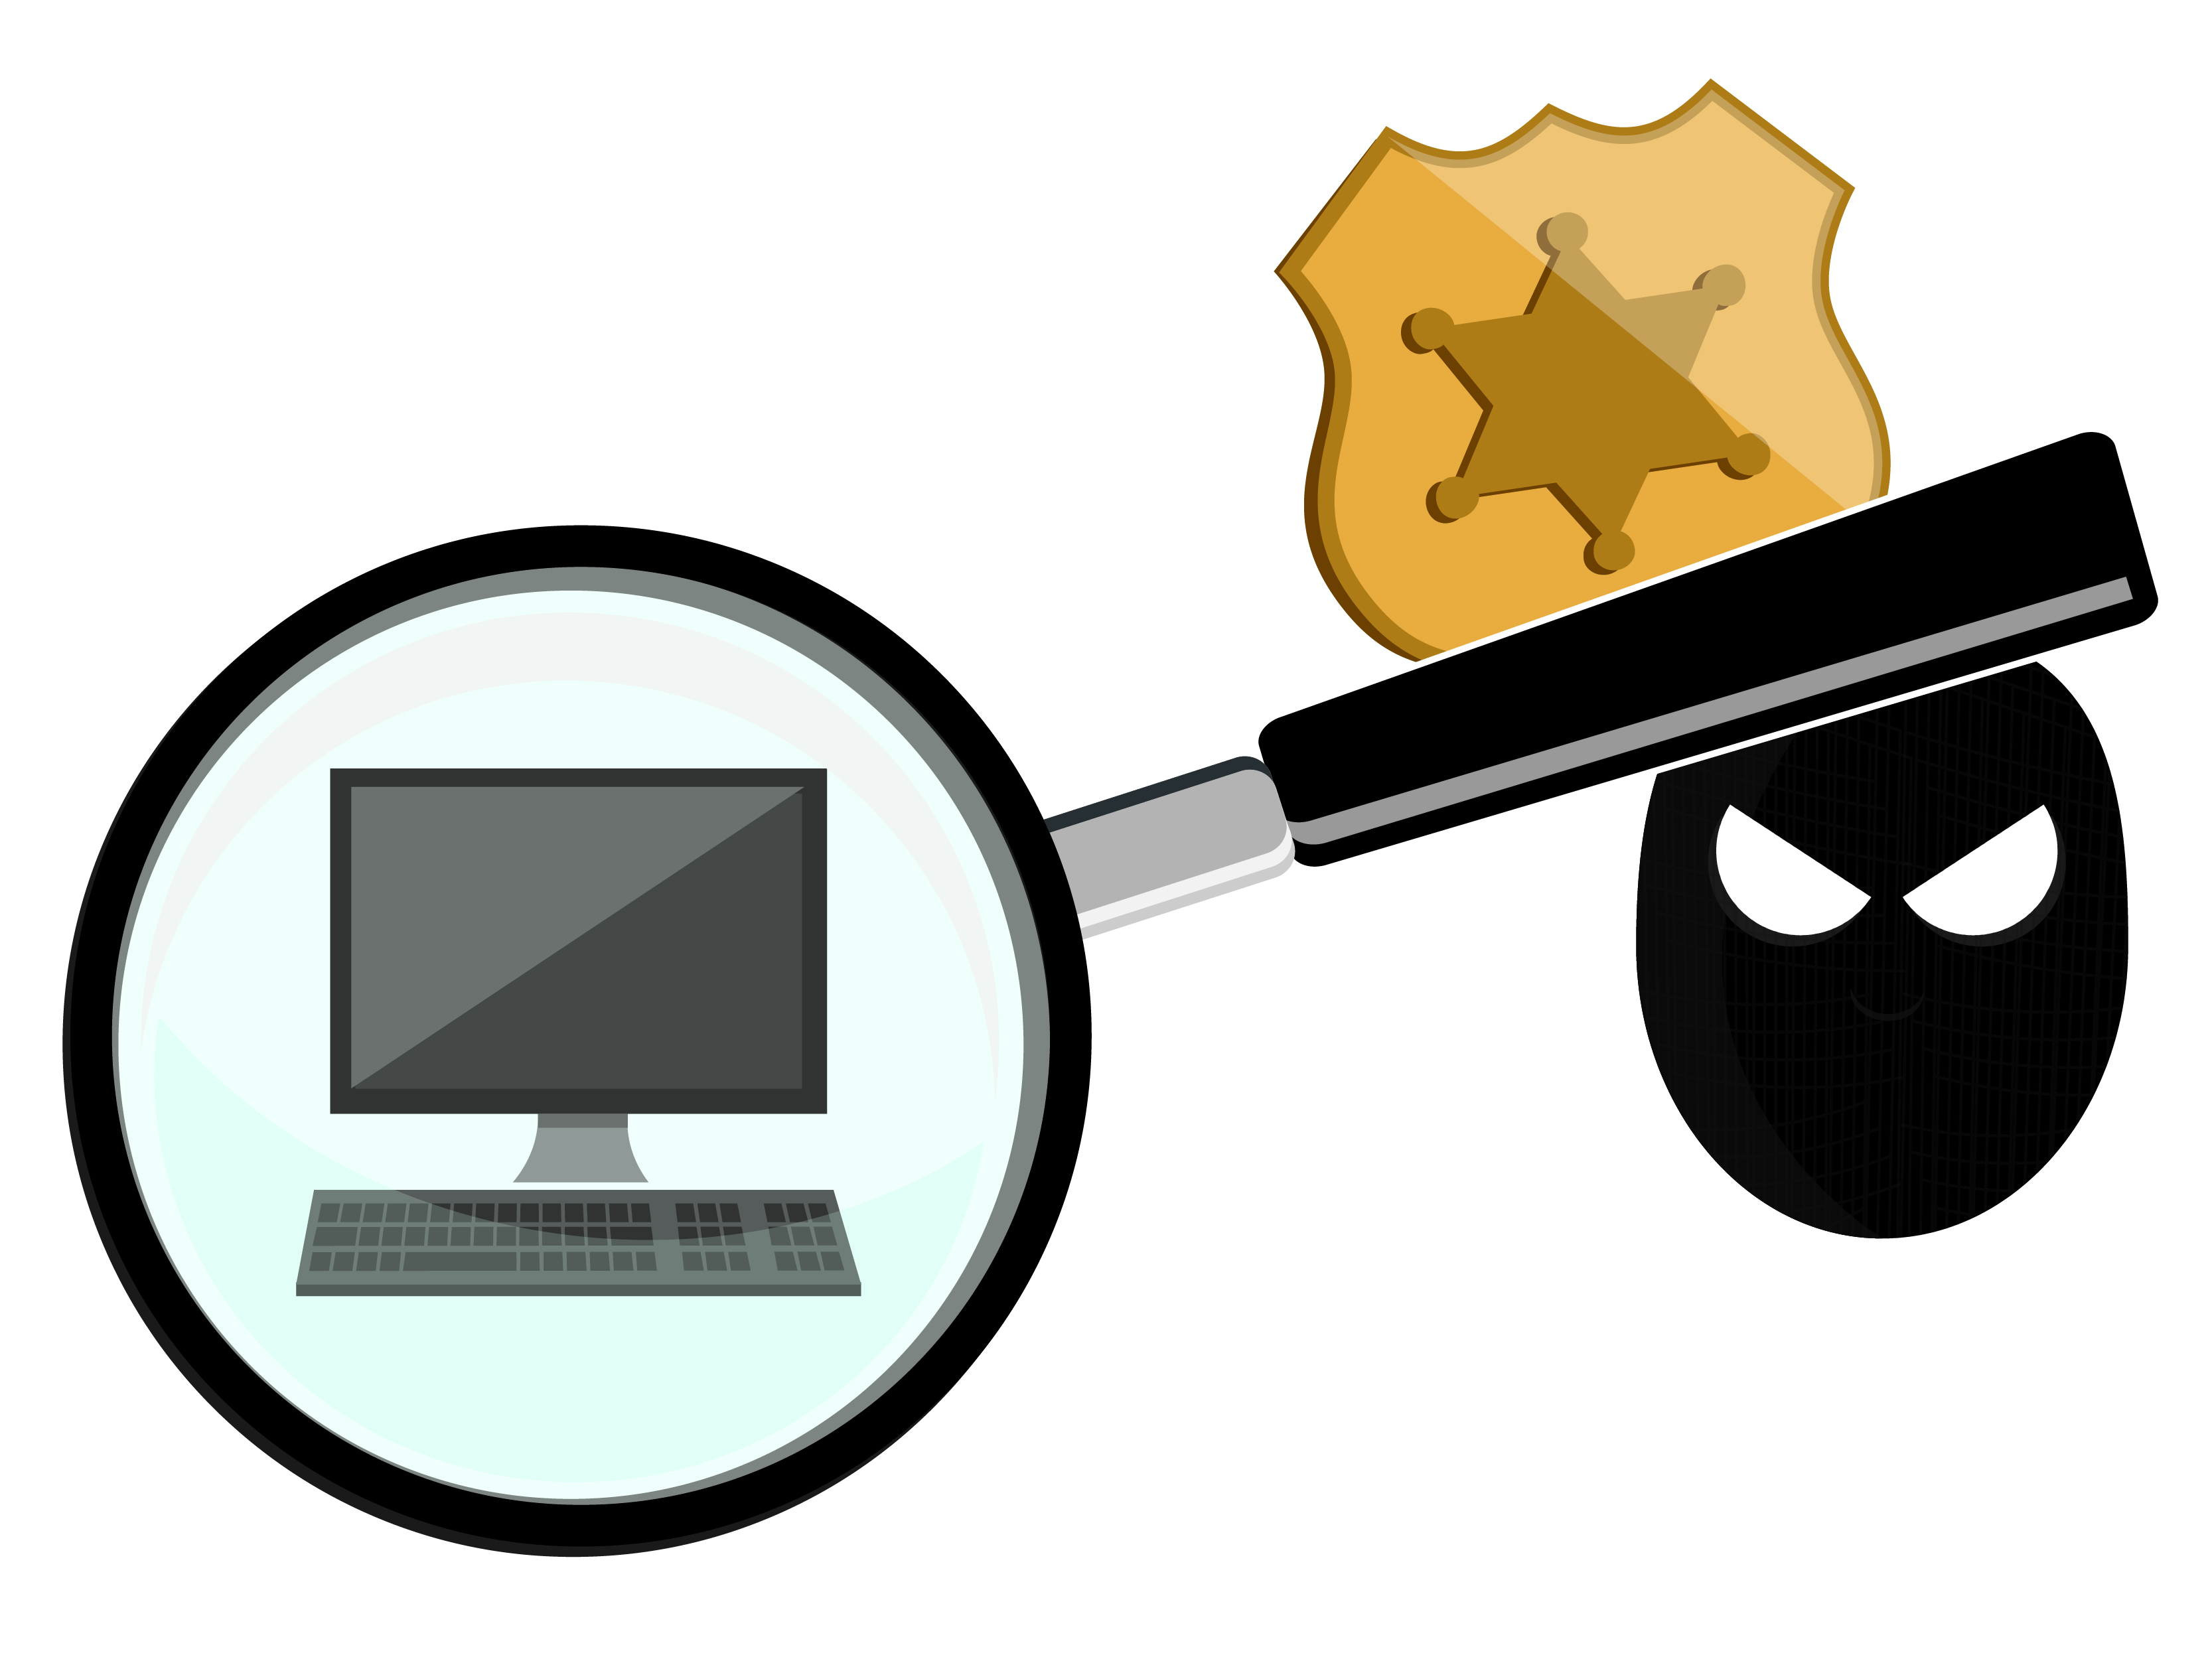 Computer Privacy and Security: Lawful and Unlawful Access